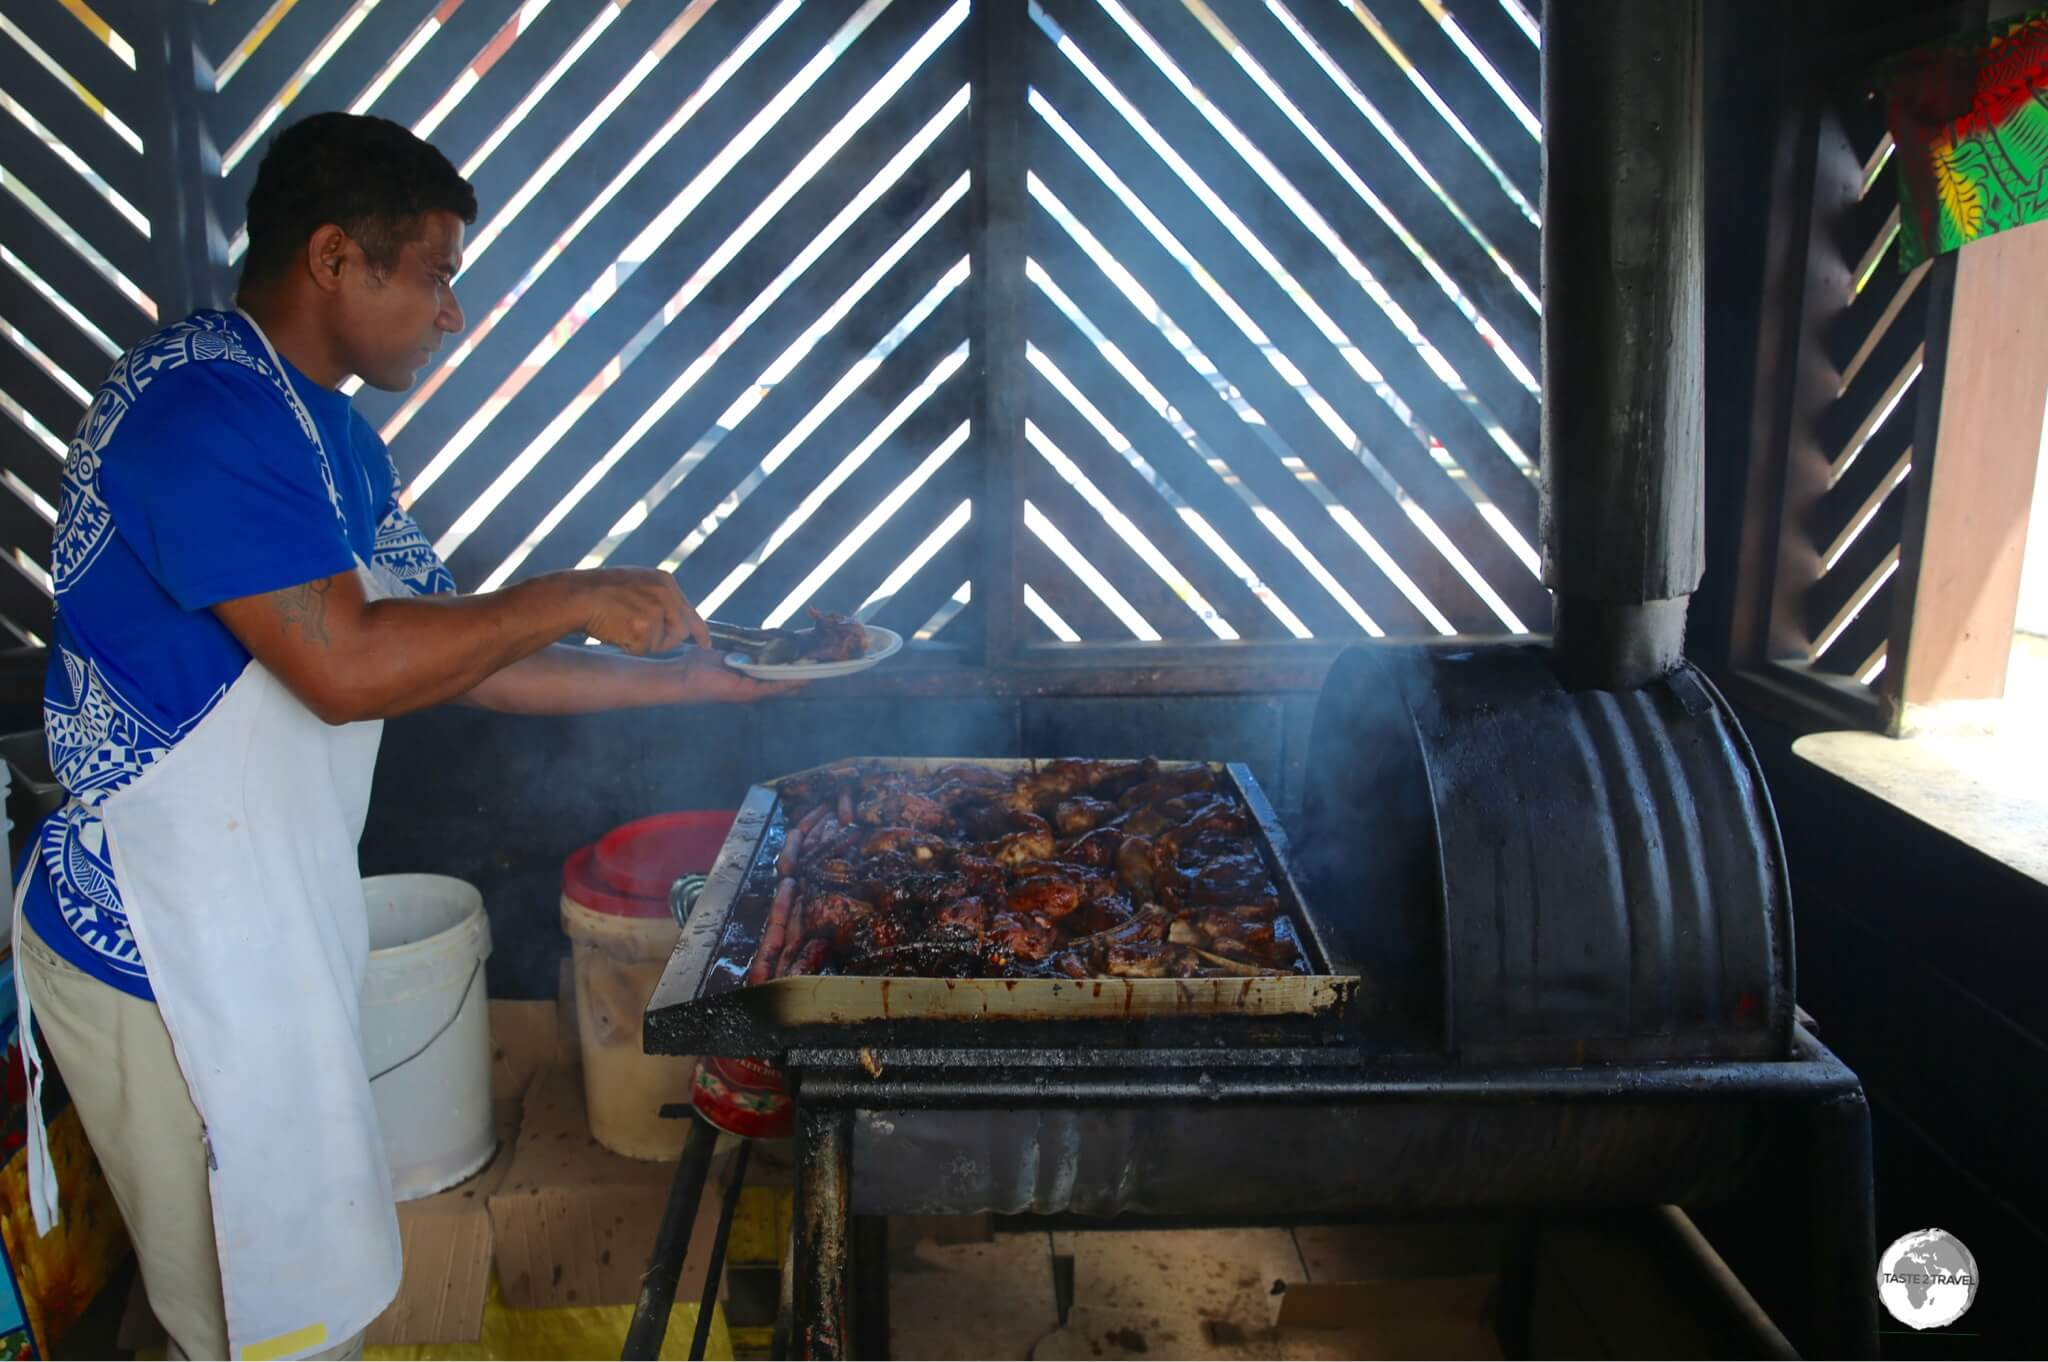 The grill master at Loui's BBQ restaurant.